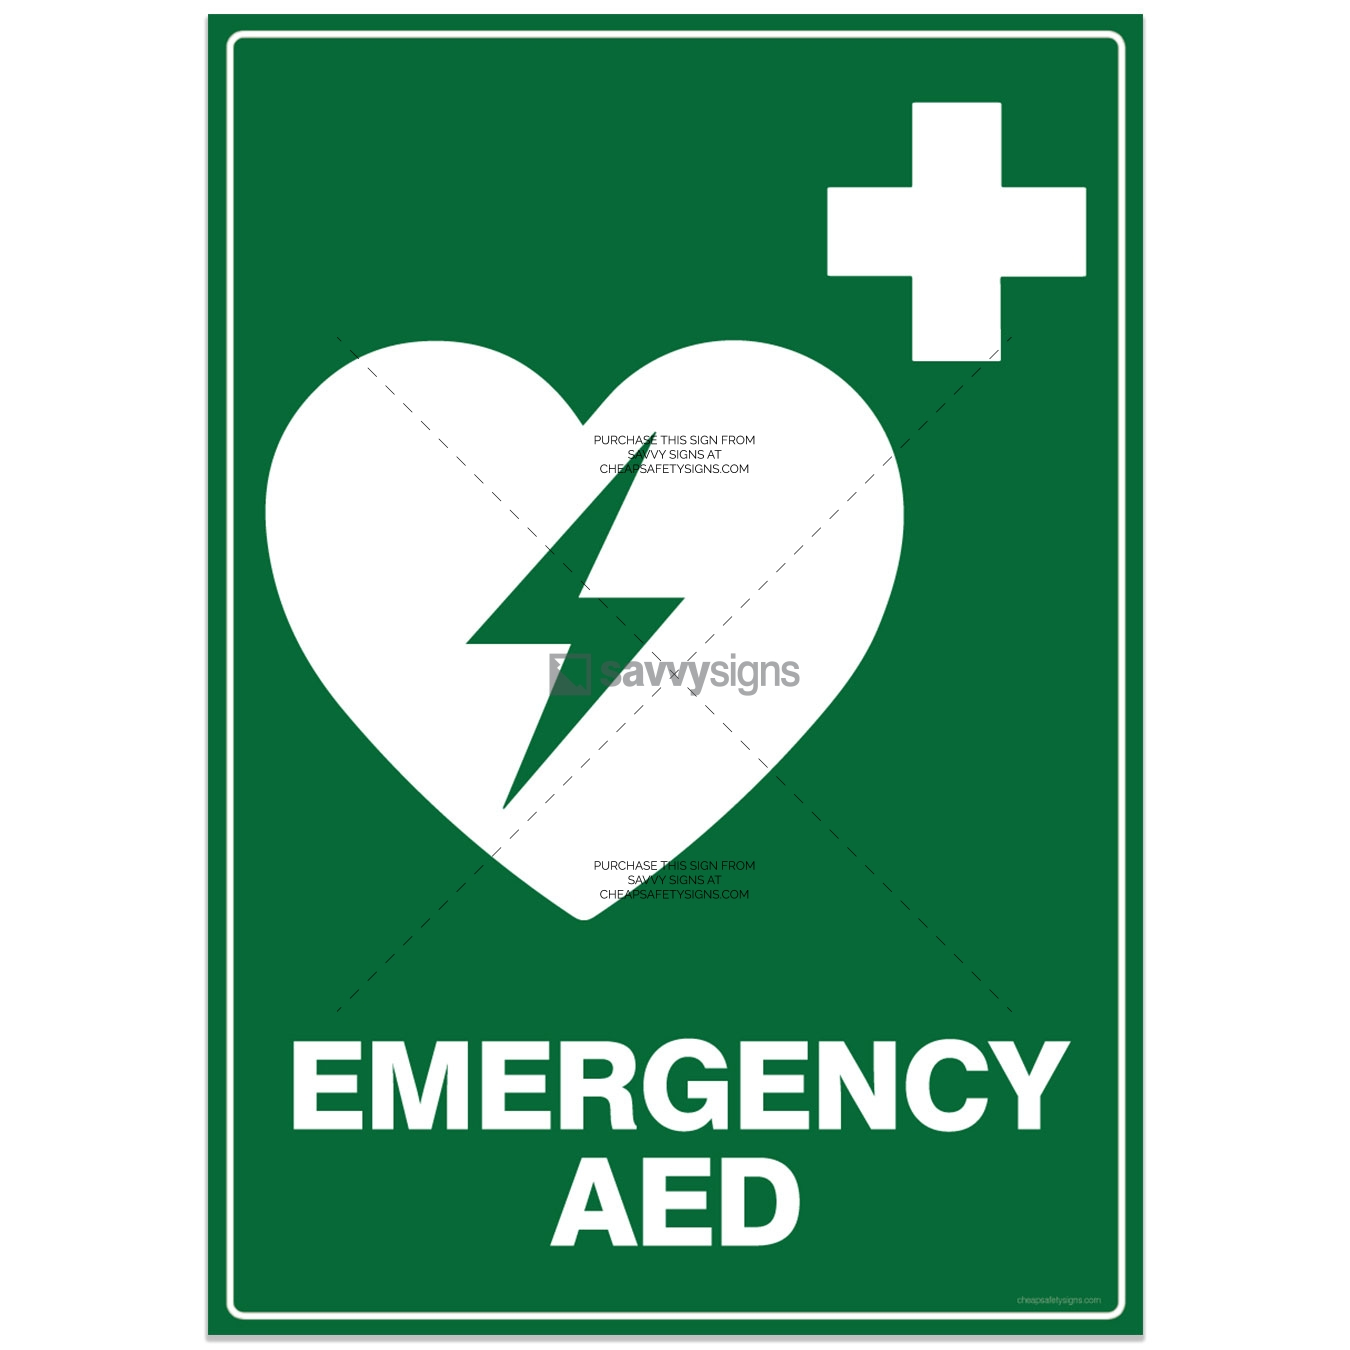 SSEME3051-EMERGENCY-Workplace-Safety-Signs_Savvy-Signs_v3